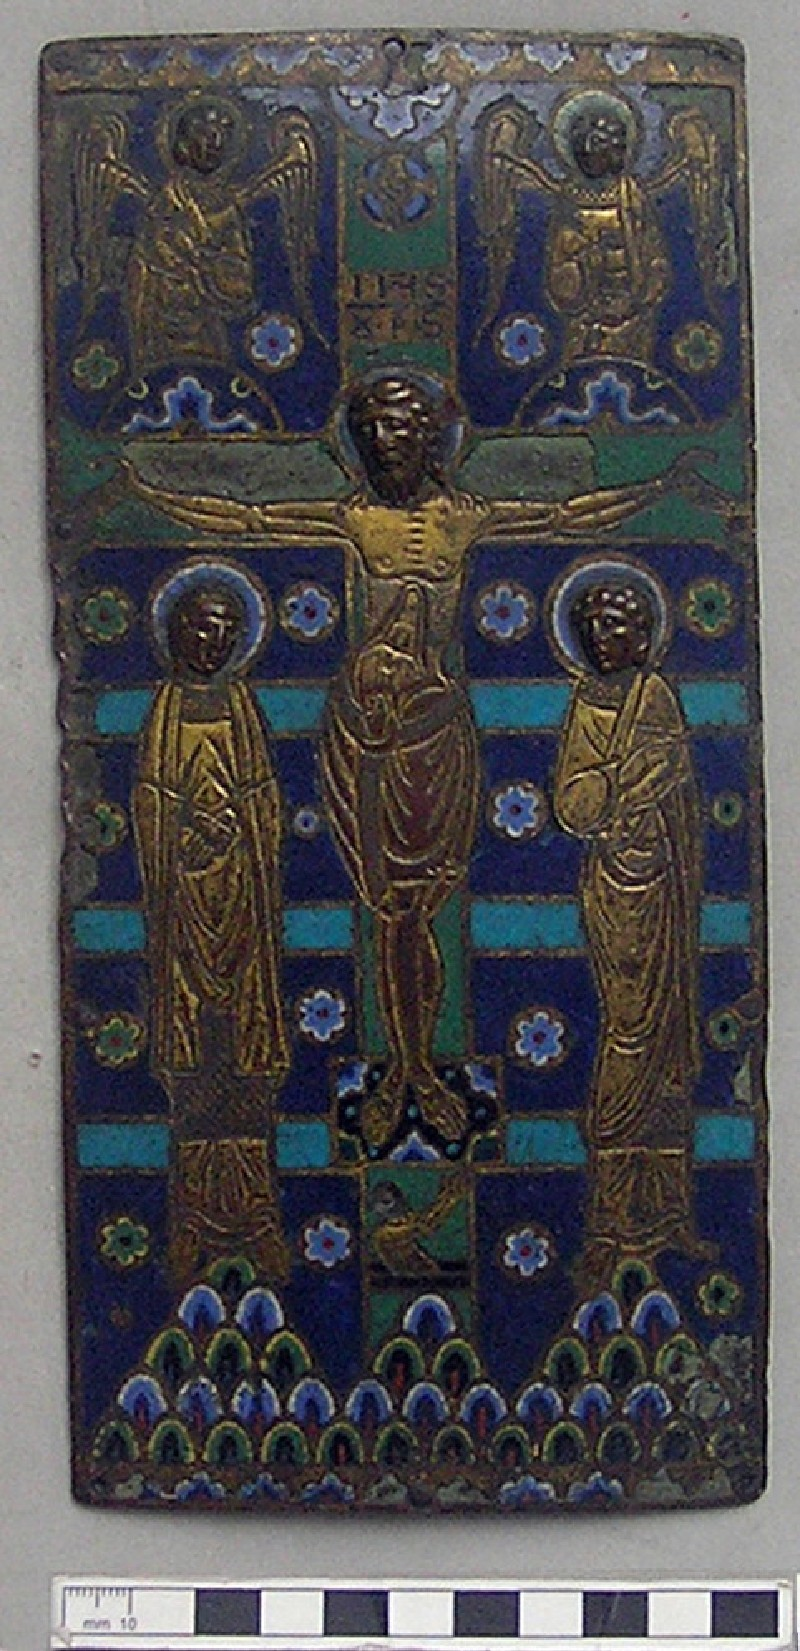 Limoges plaque or book cover with depiction of The Crucifixion